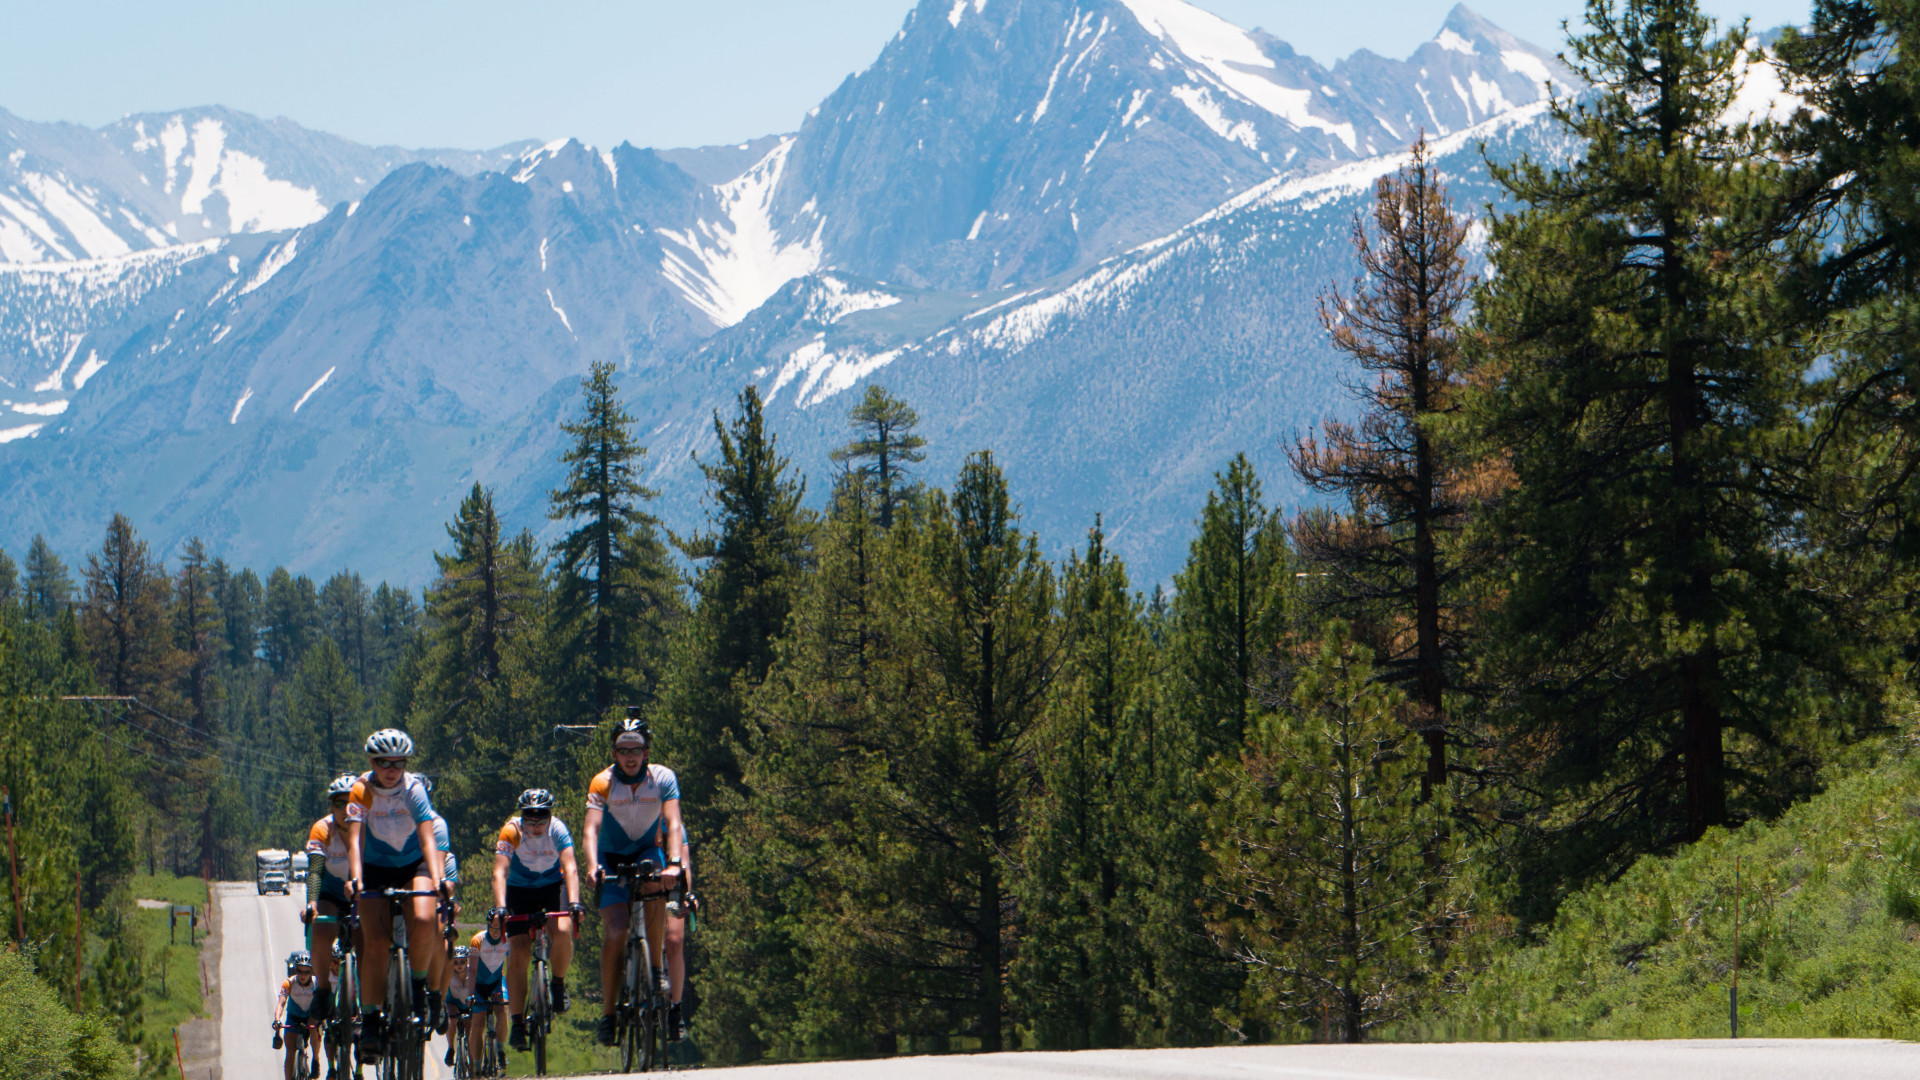 Cycling among the High Sierra mountains near Mammoth Lakes, California